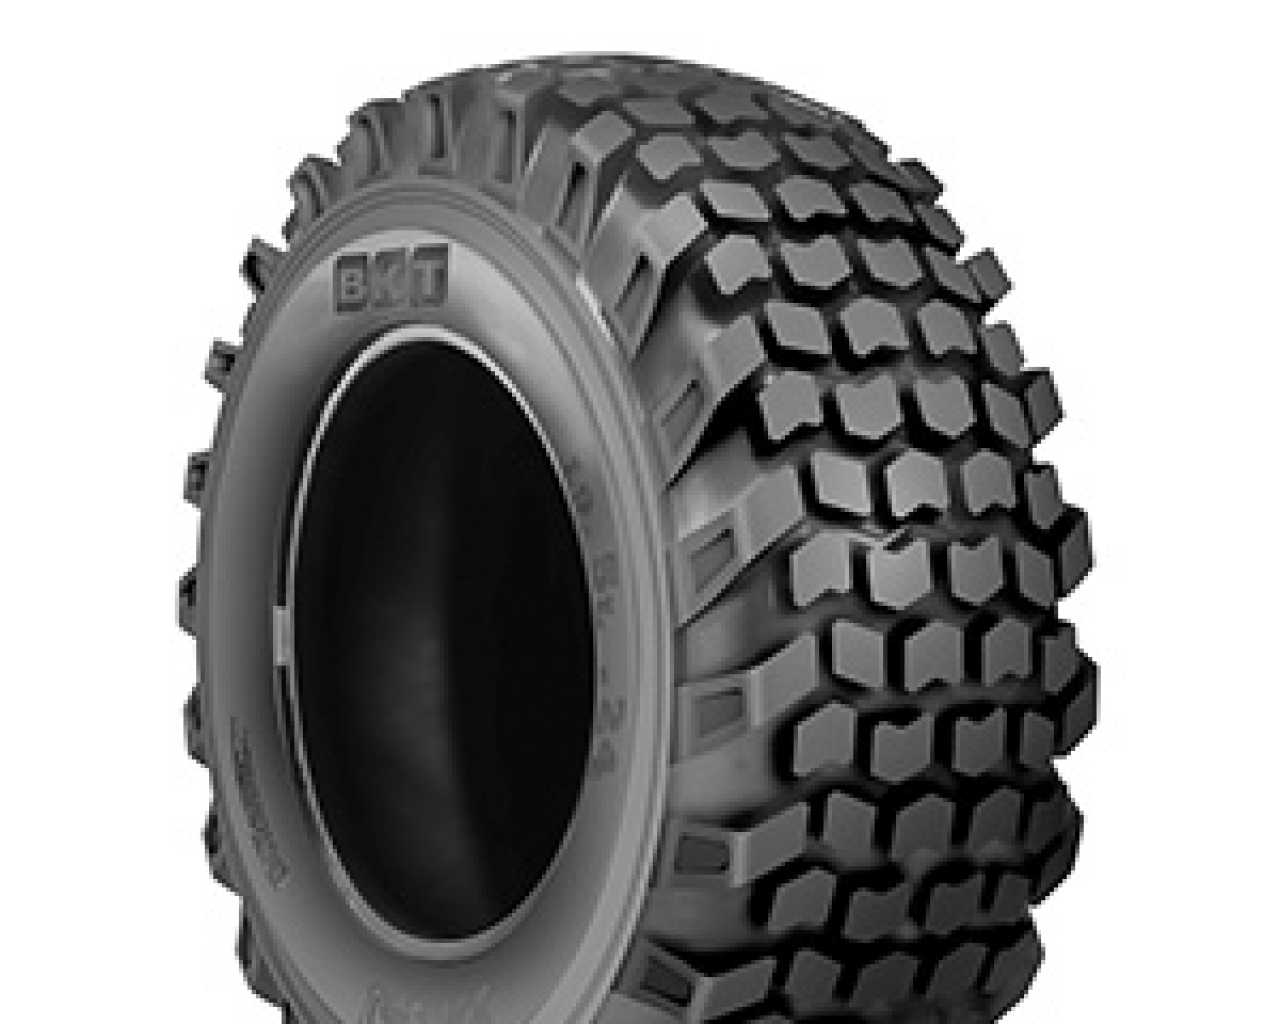 Compare Tire Sizes >> 16.9X24 BKT TR-461 14PR TL - Buy online at Agrigear, Ireland's tyre and wheel specialists